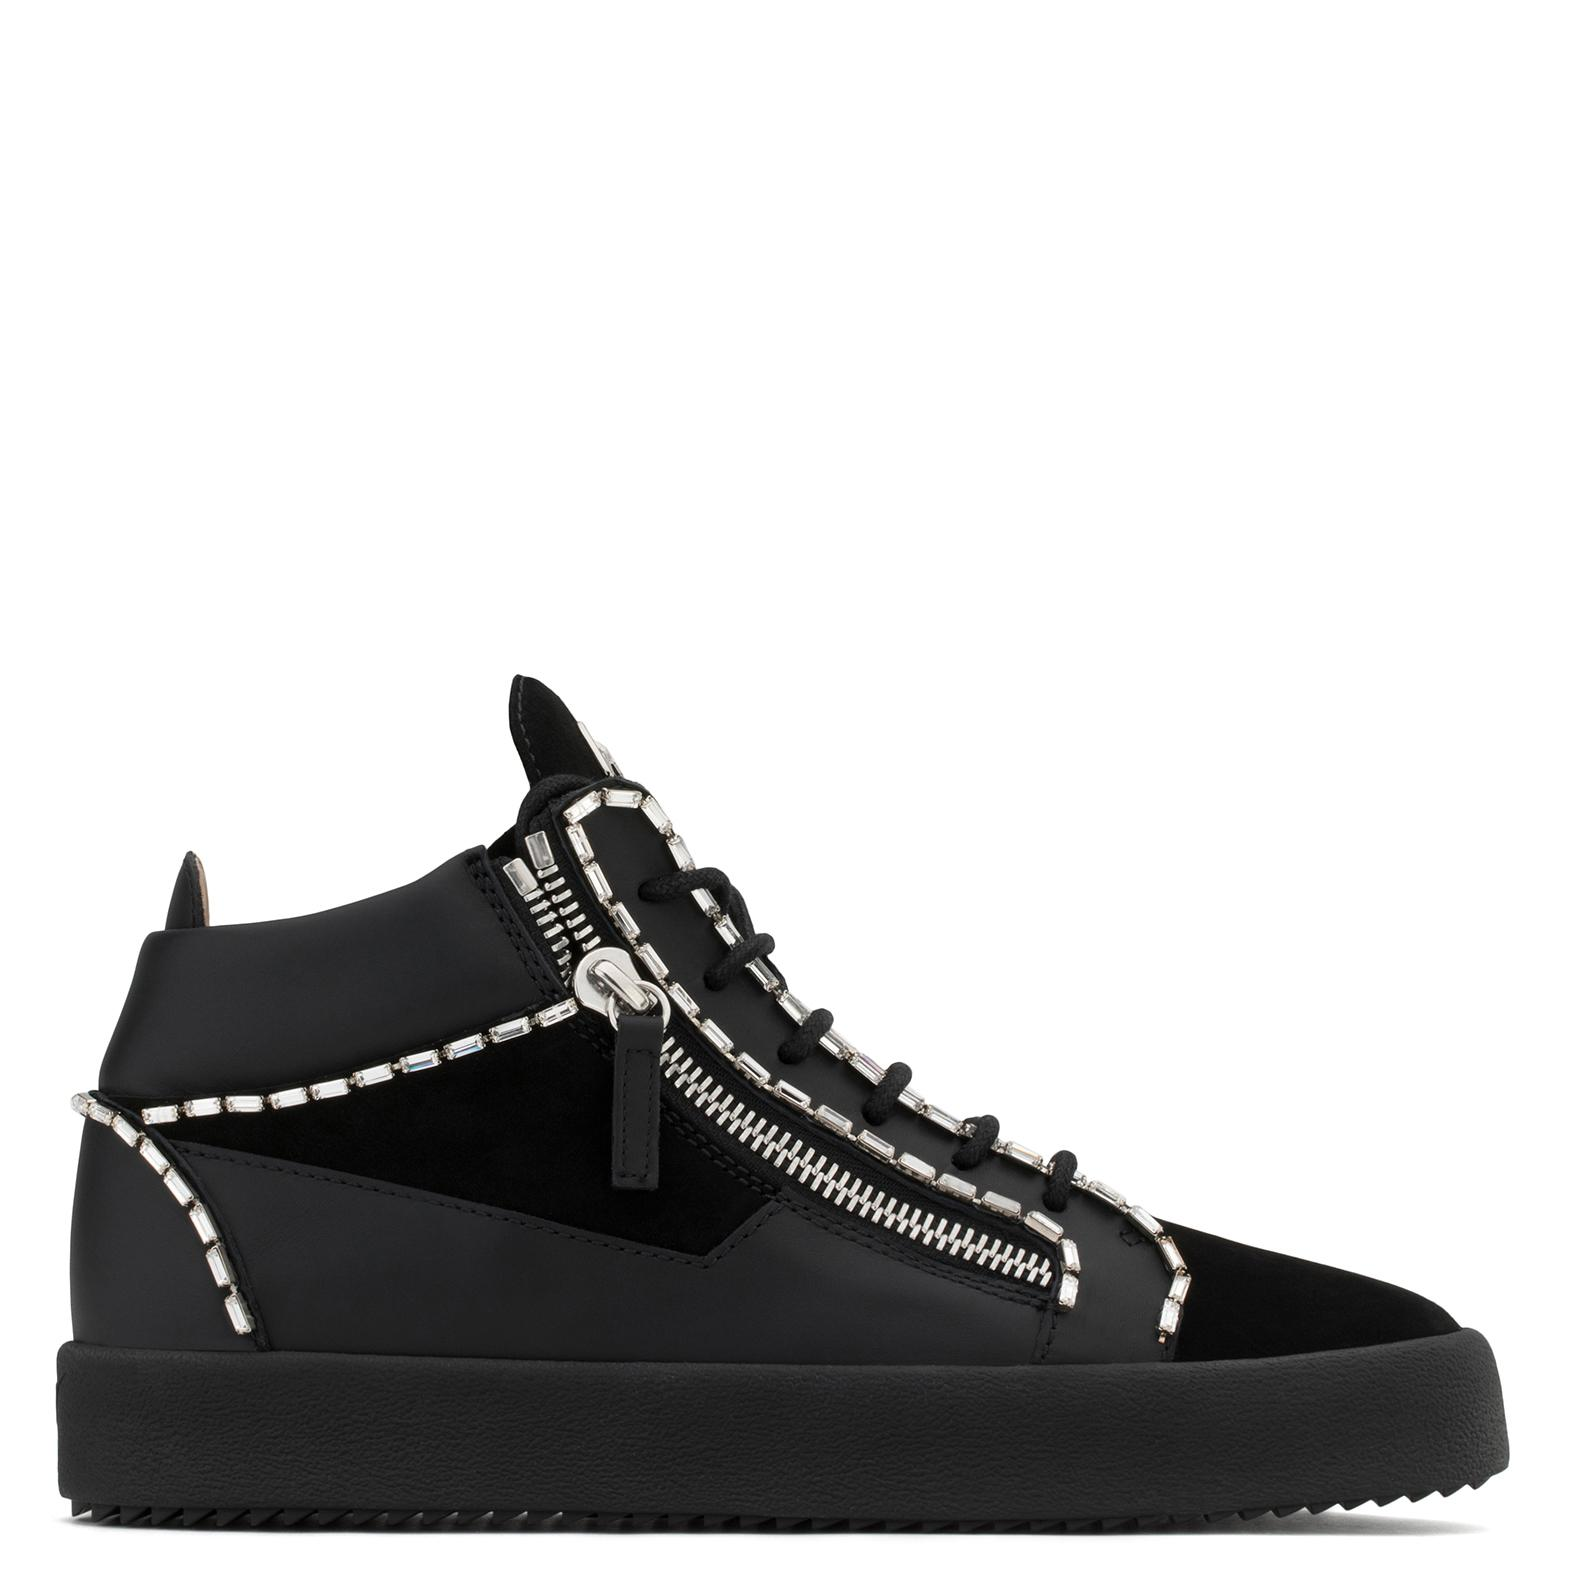 Giuseppe Zanotti Calf leather and suede mid-top sneaker with crystals CRAIG wdatD